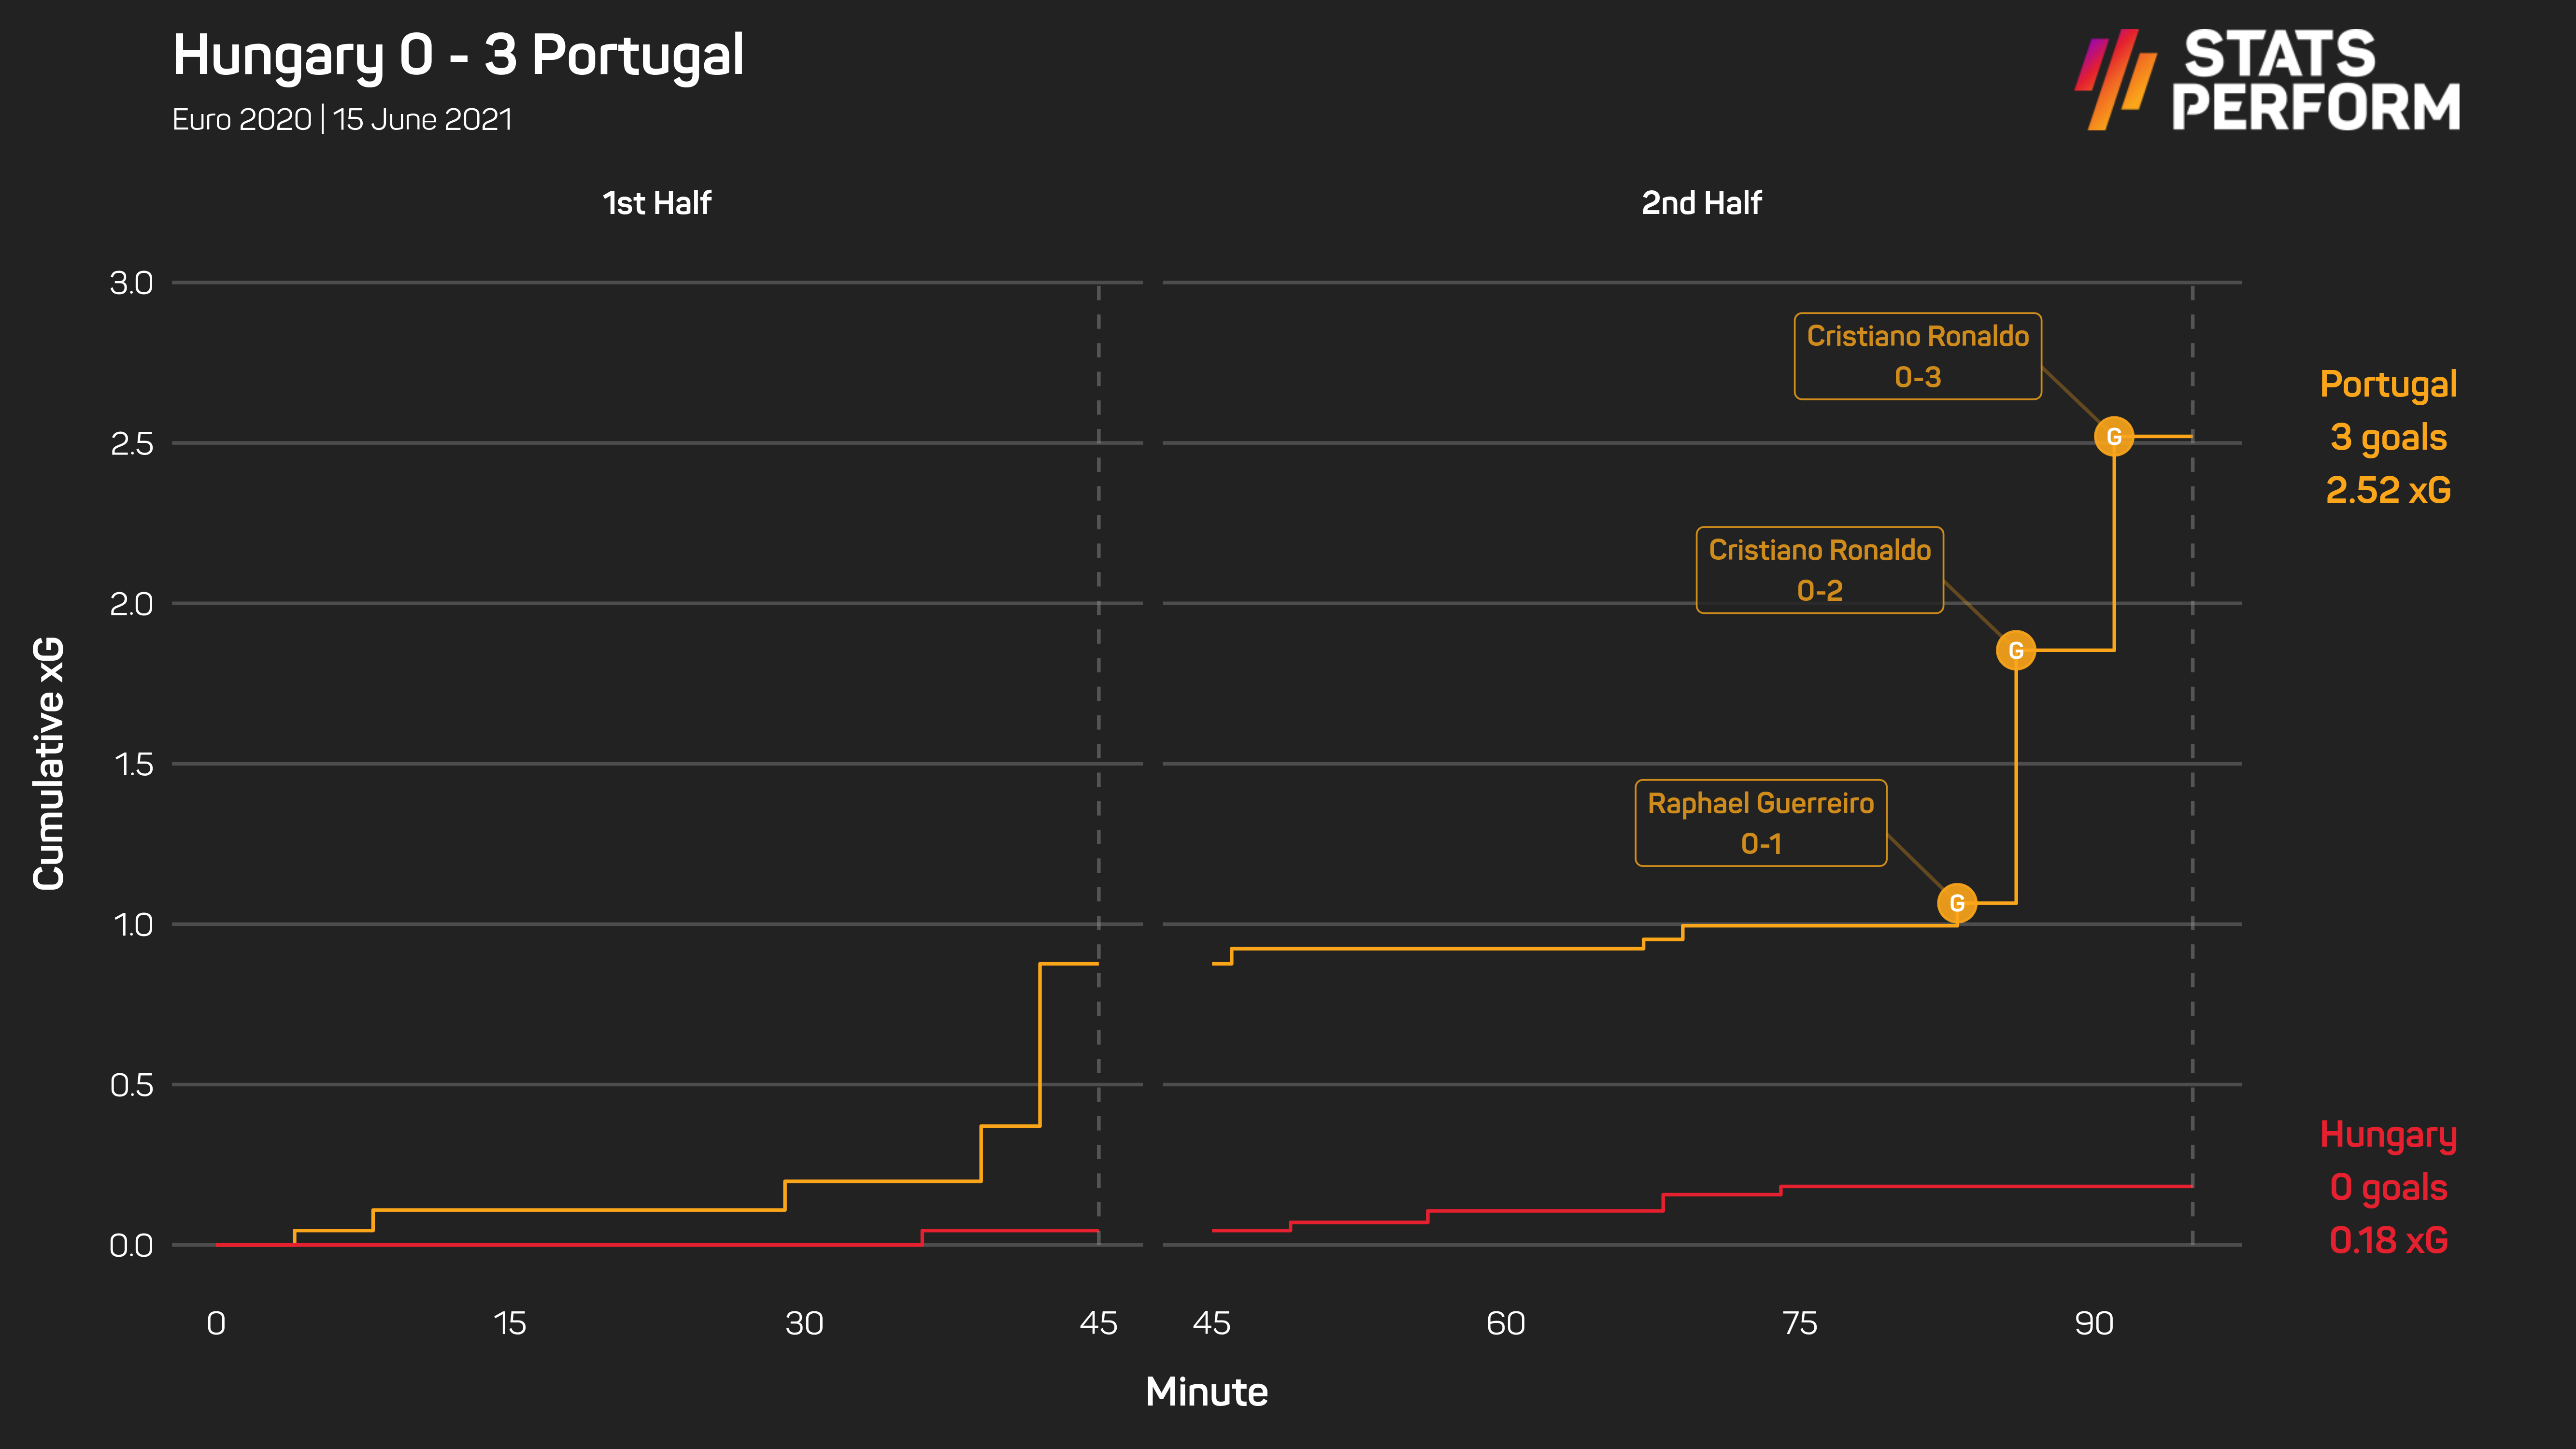 Portugal left it late against Hungary